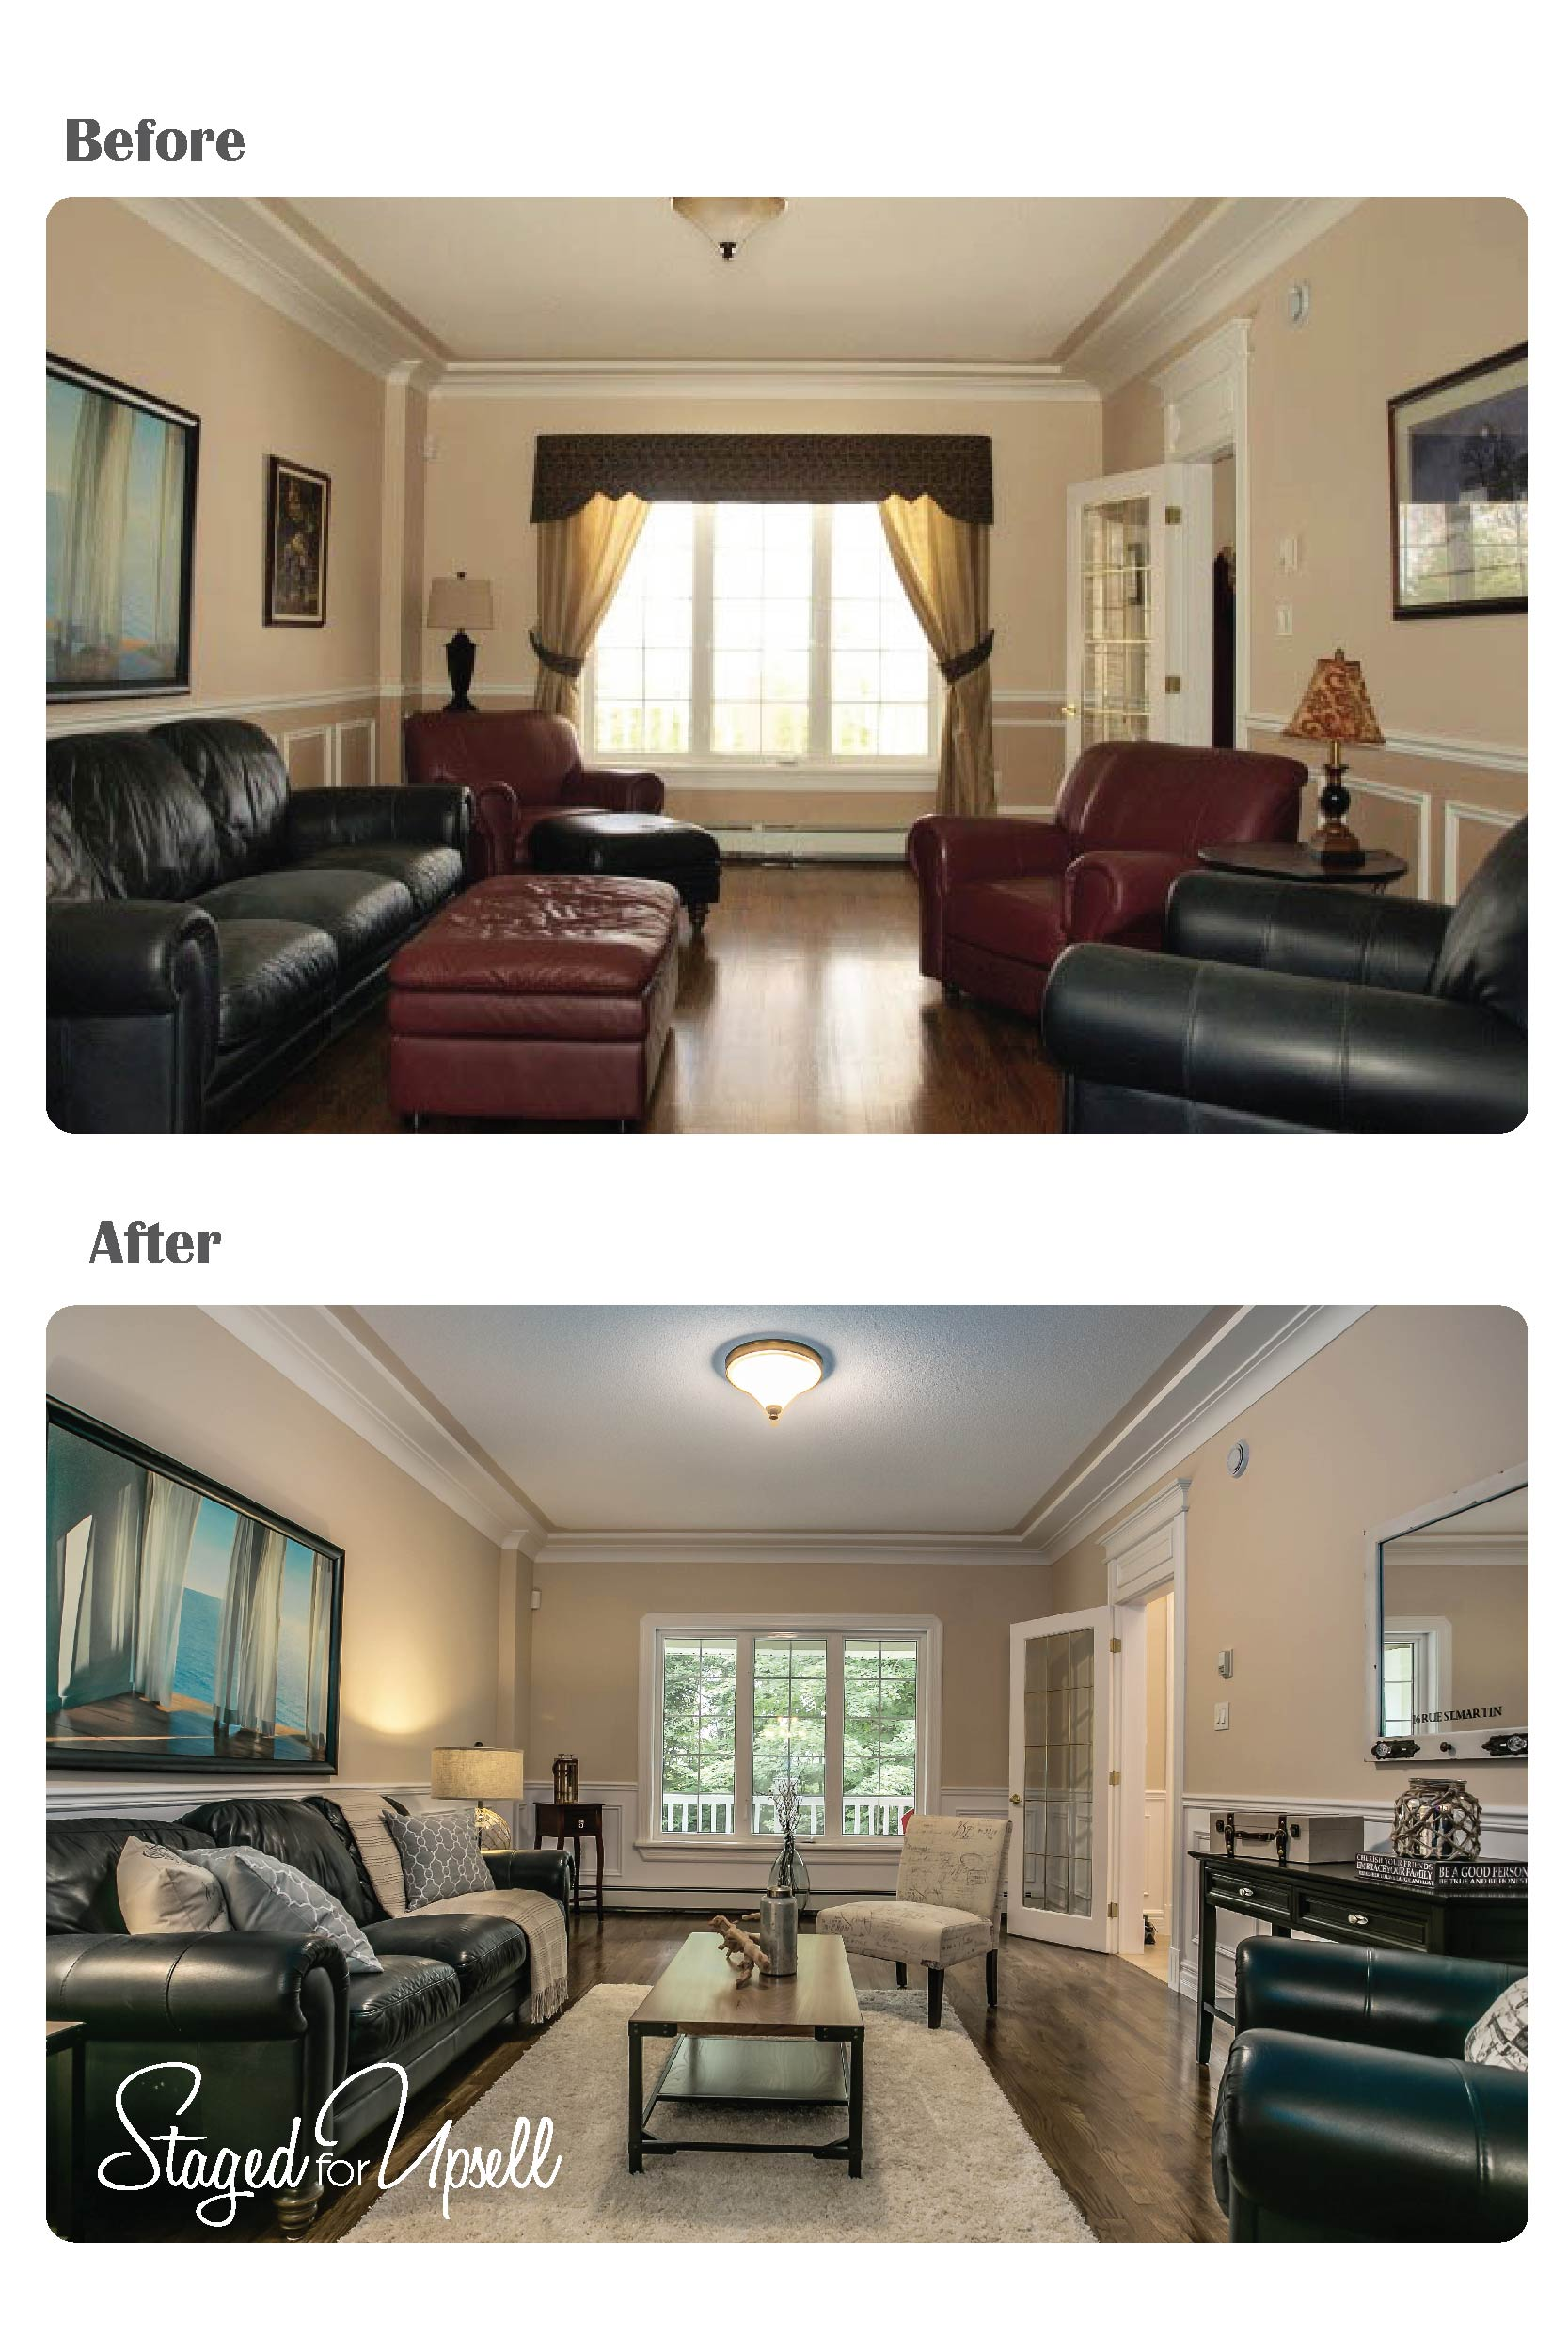 Before and after staged for upsell for Staging before and after